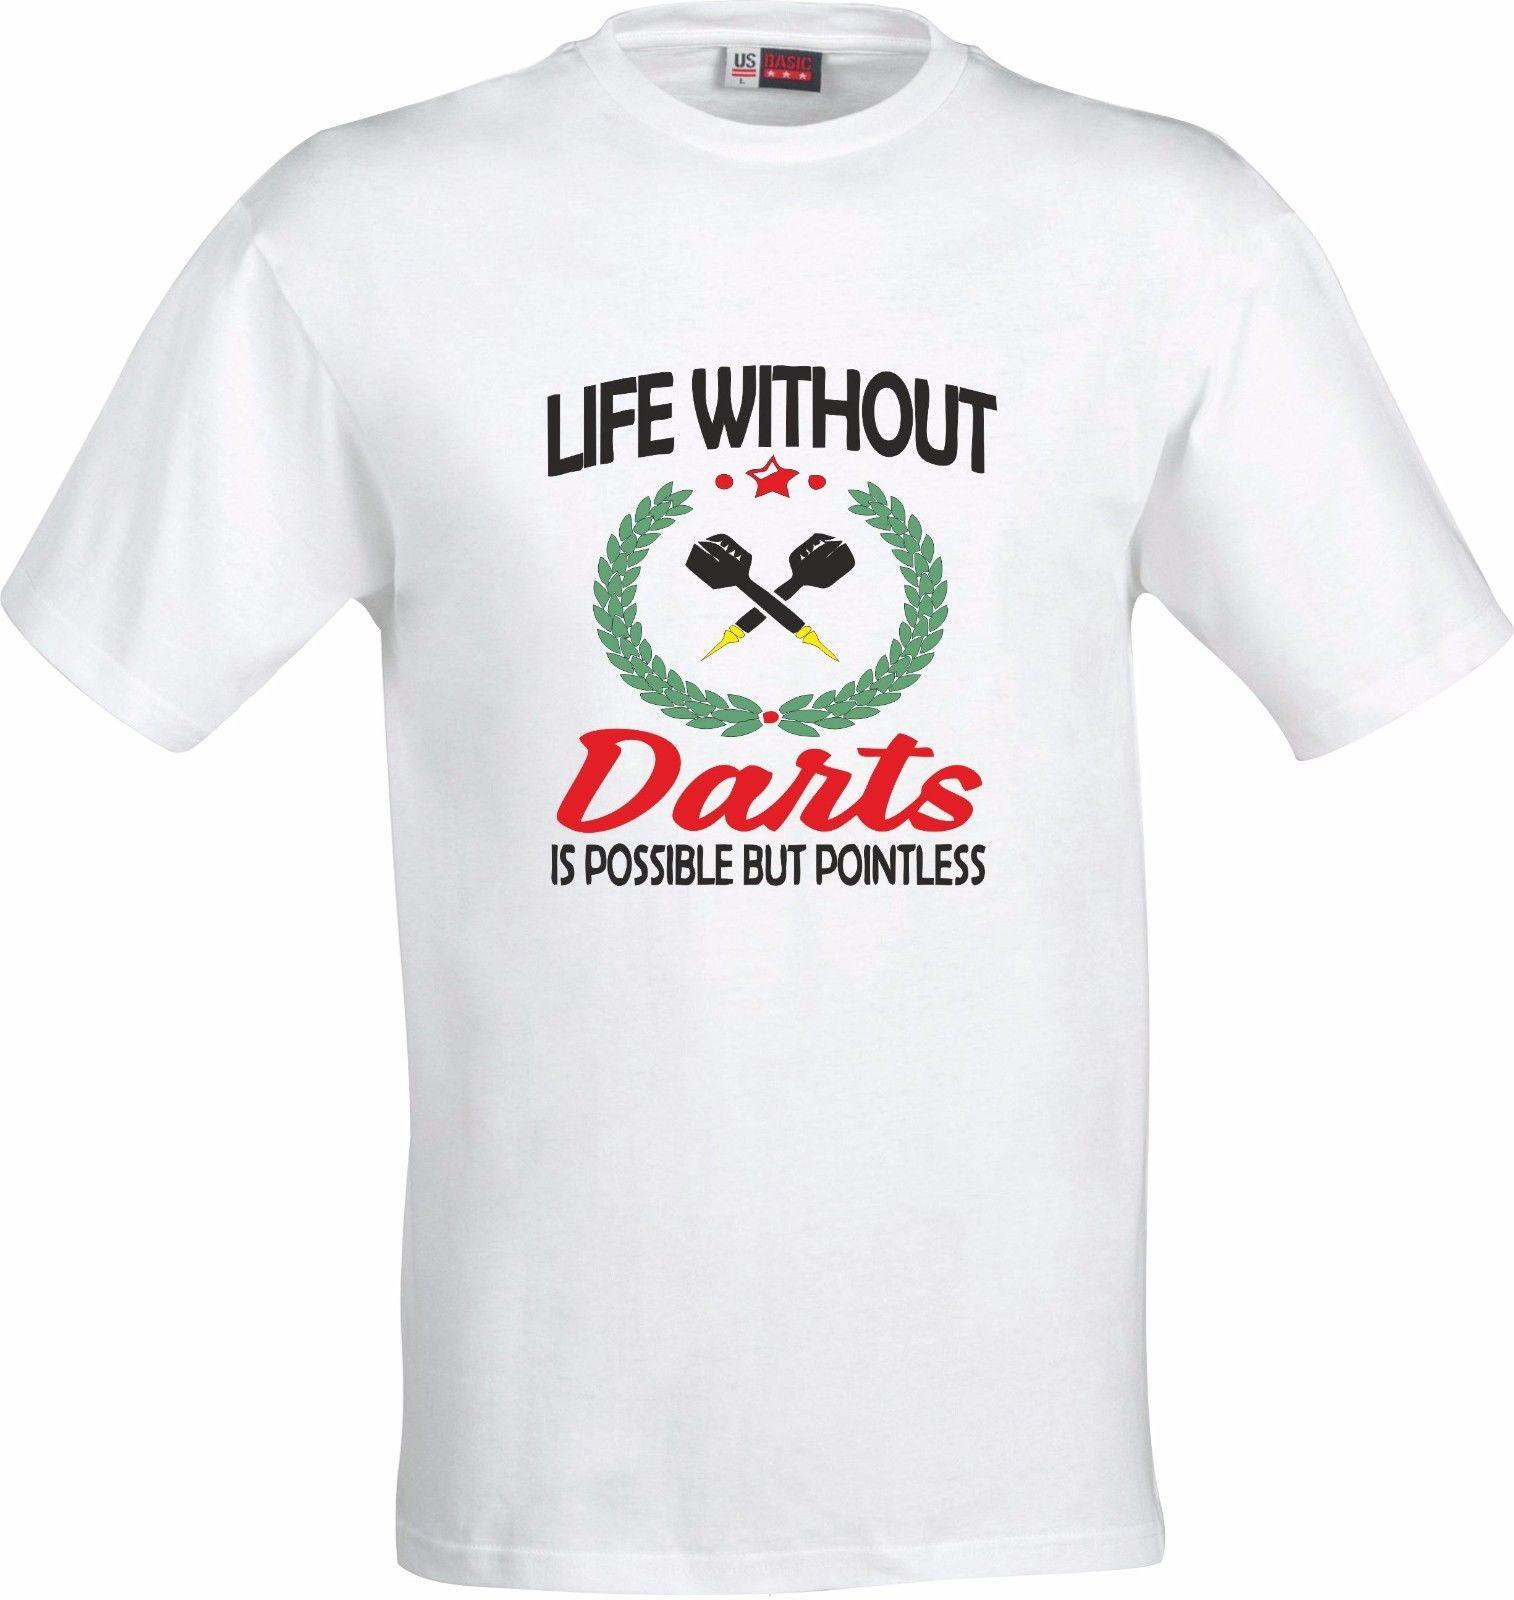 b31b14ca2c1 LIFE WITHOUT DARTS IS POSSIBLE BUT POINTLESS FULL COLOR SUBLIMATION T SHIRT  Custom Printed Tshirt